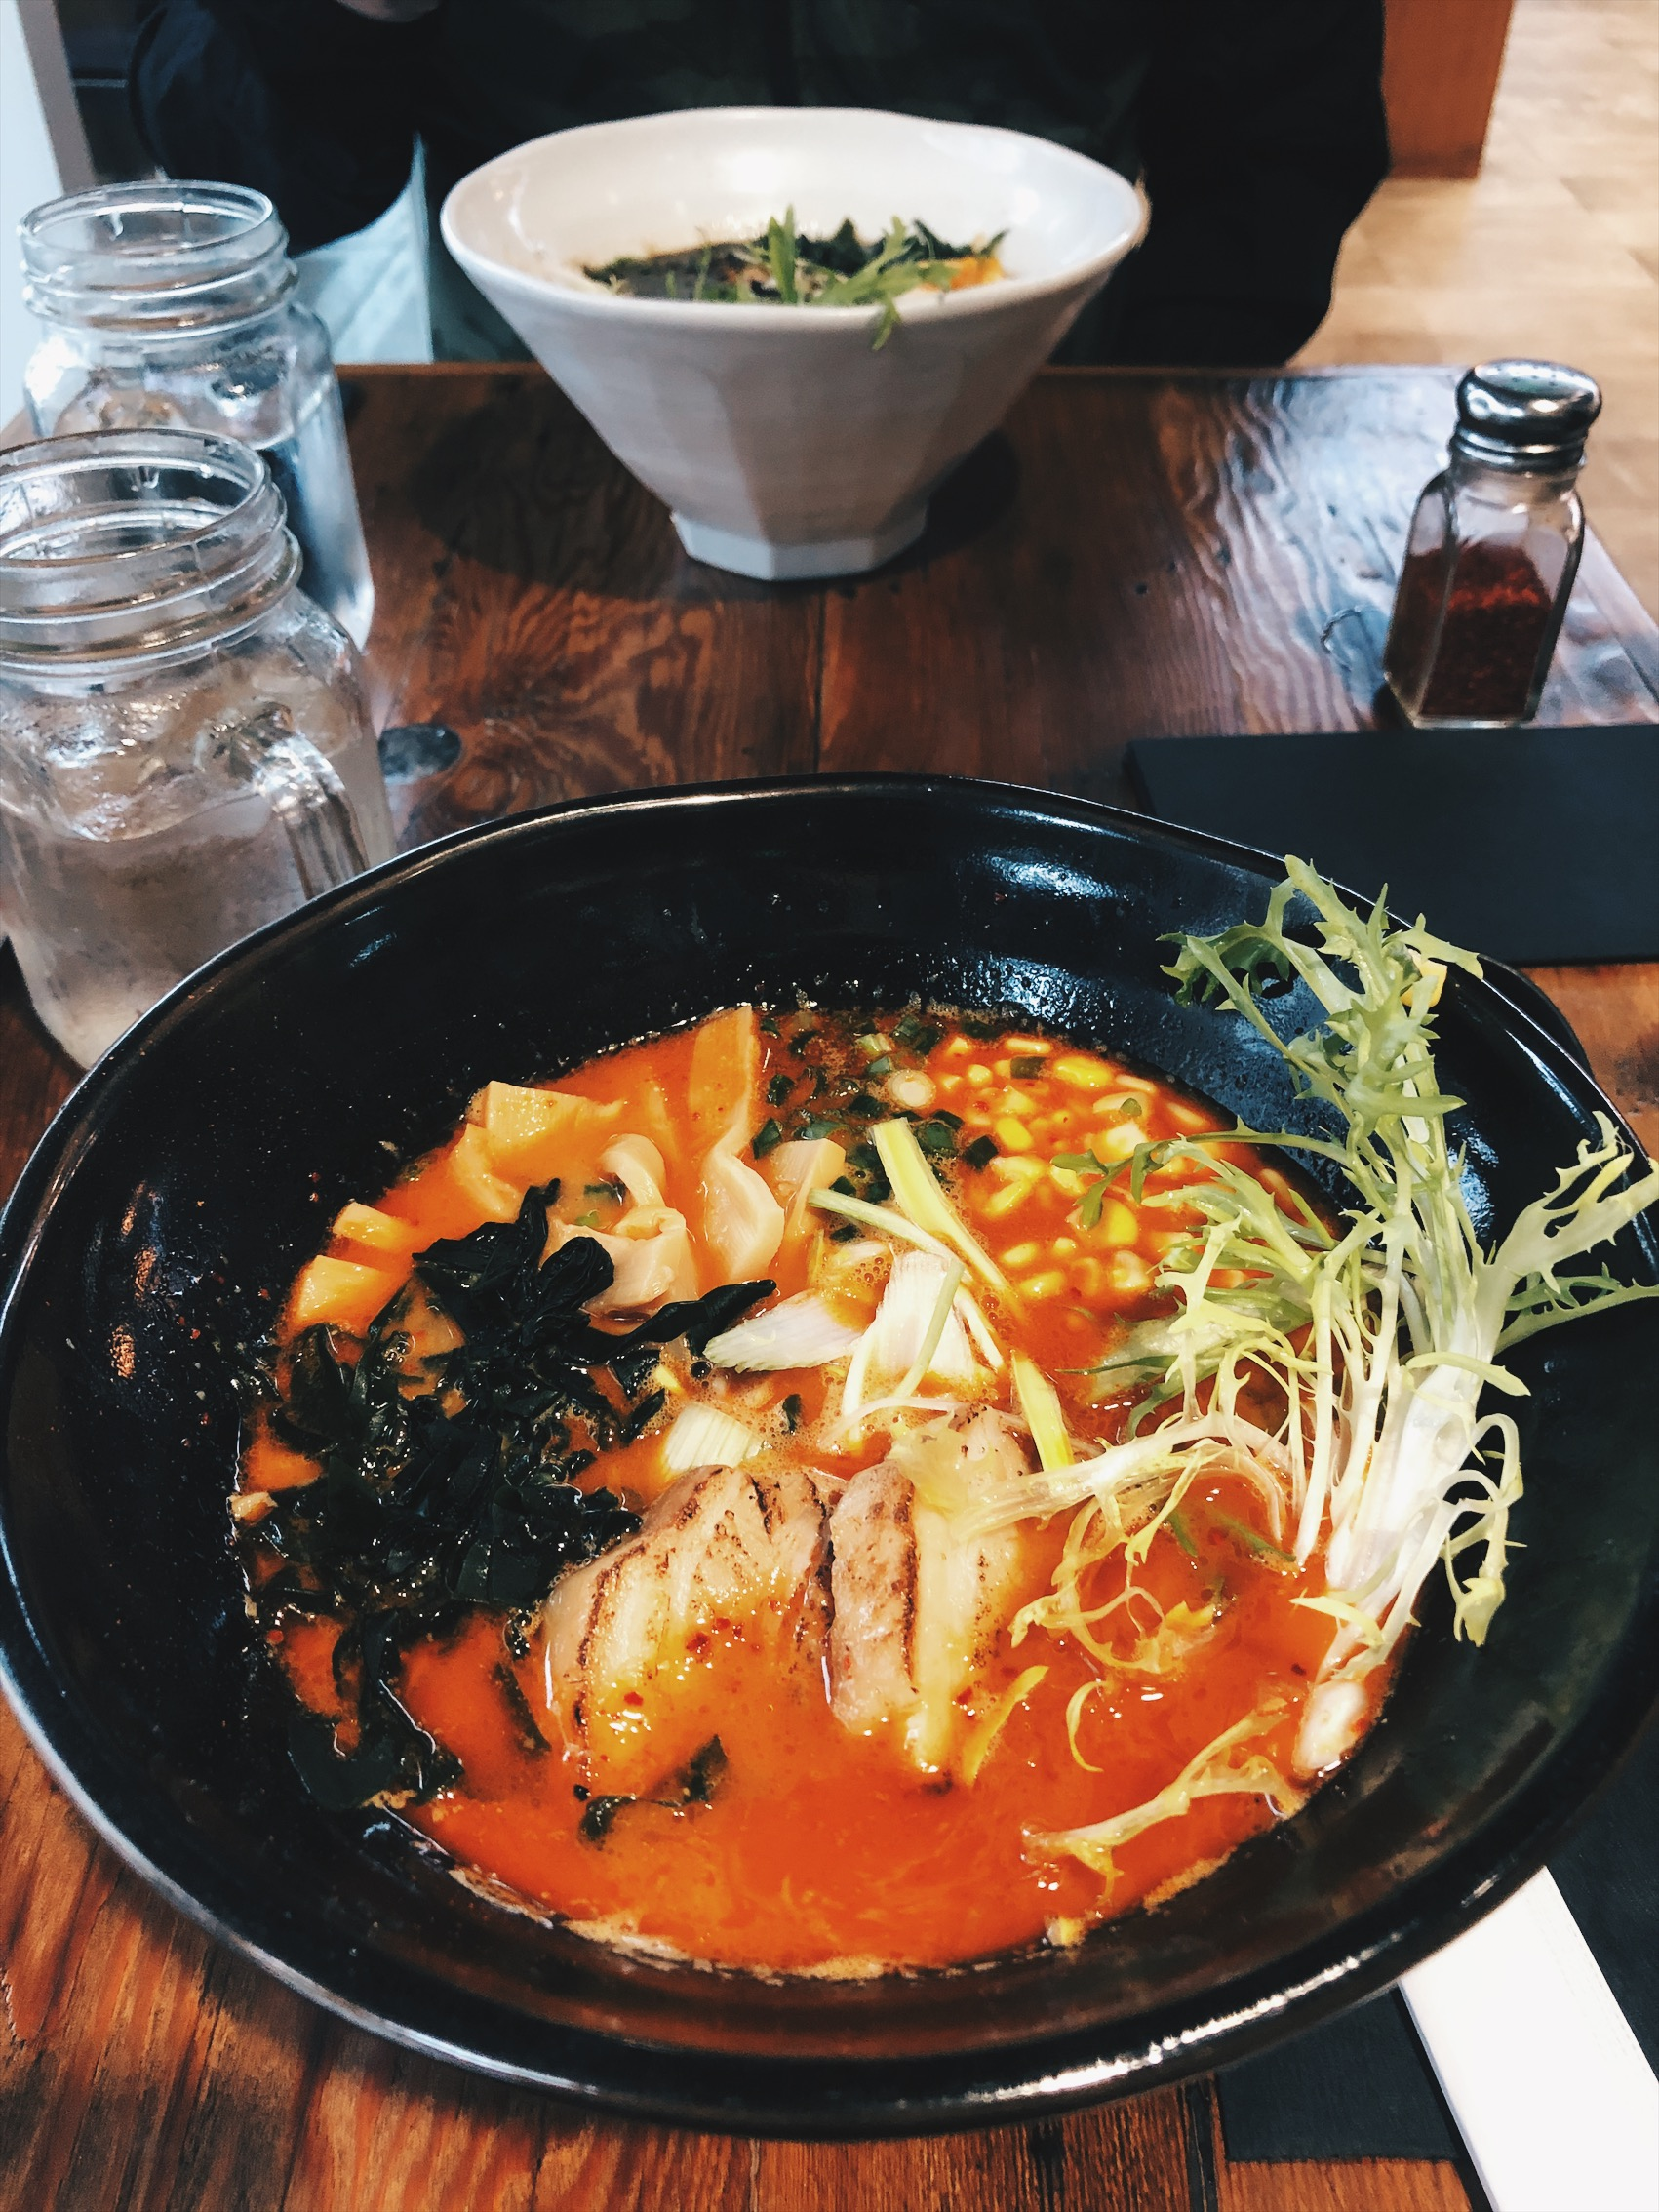 I ordered the Spicy Miso.